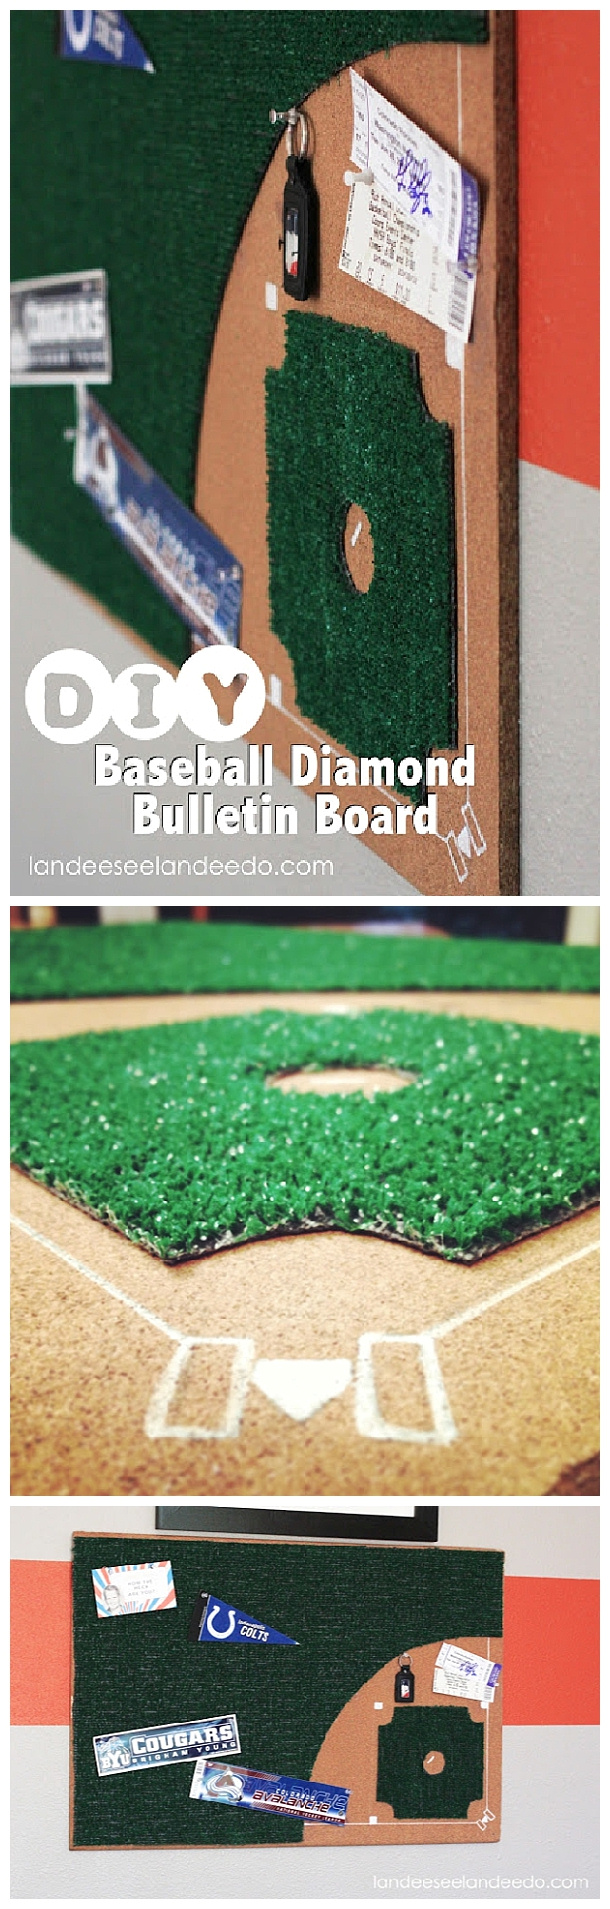 A do it yourself fathers day diy gift projects recipes and ideas diy baseball diamond bulletin board easy do it yourself project tutorial perfect for dads solutioingenieria Images